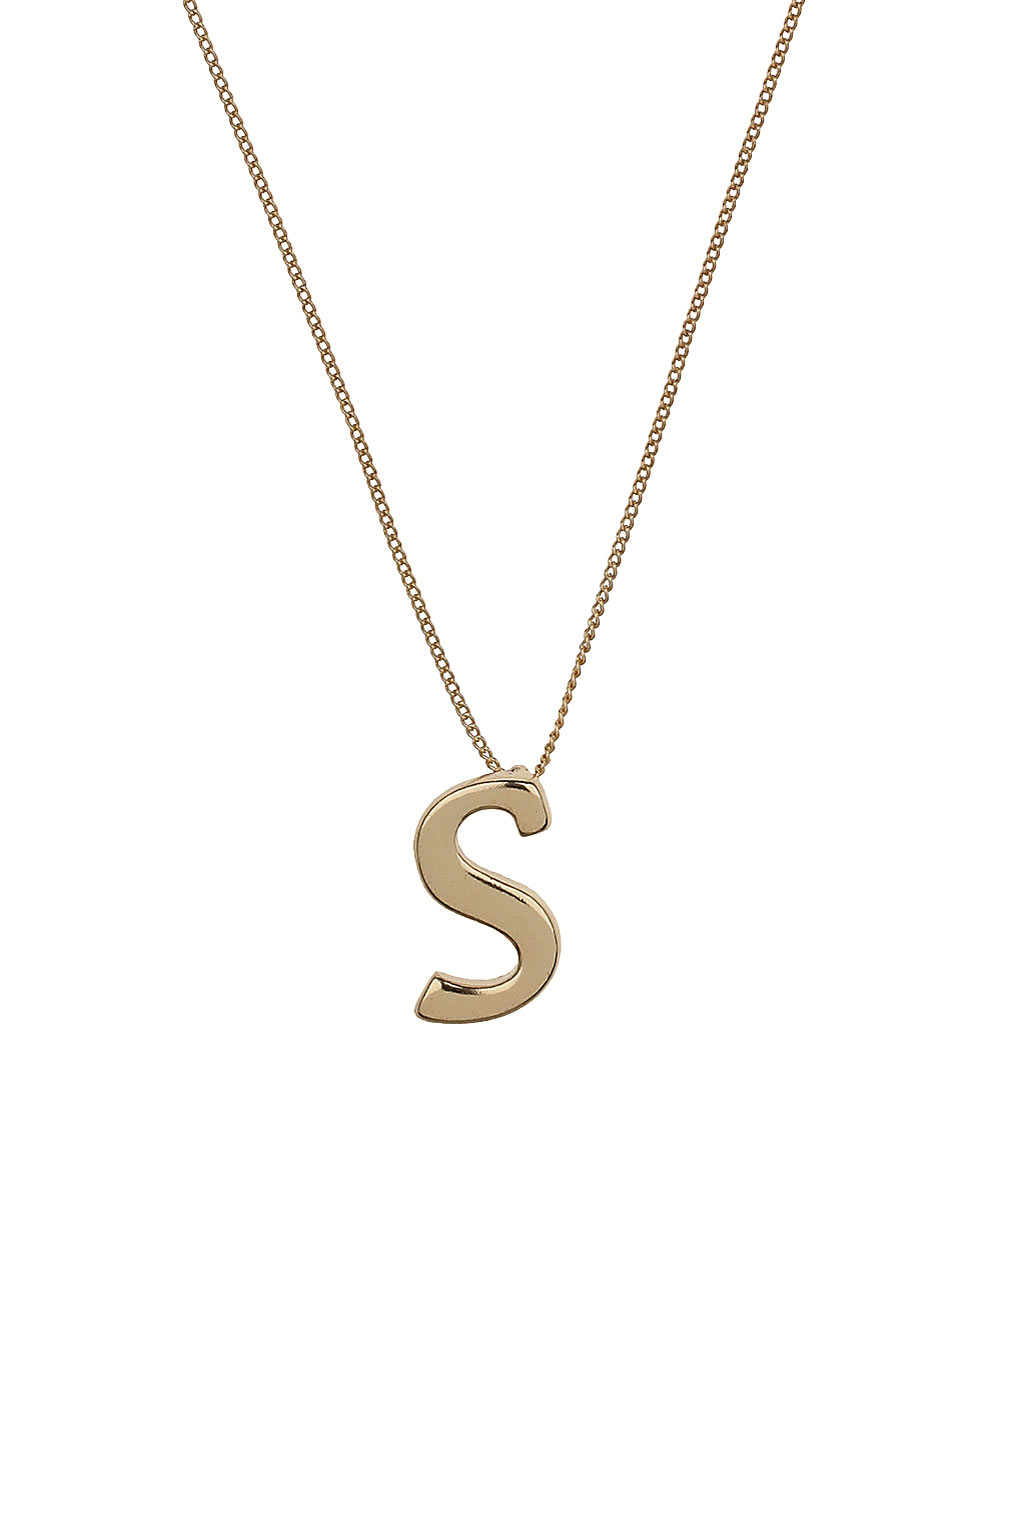 Initial s necklace gold necklace wallpaper gallerychitrak 0 05 ct 14k rose gold diamond initial s disc pendant necklace 18k gold plated two initials necklace initial tiffany diamond letter initial s pendant aloadofball Choice Image